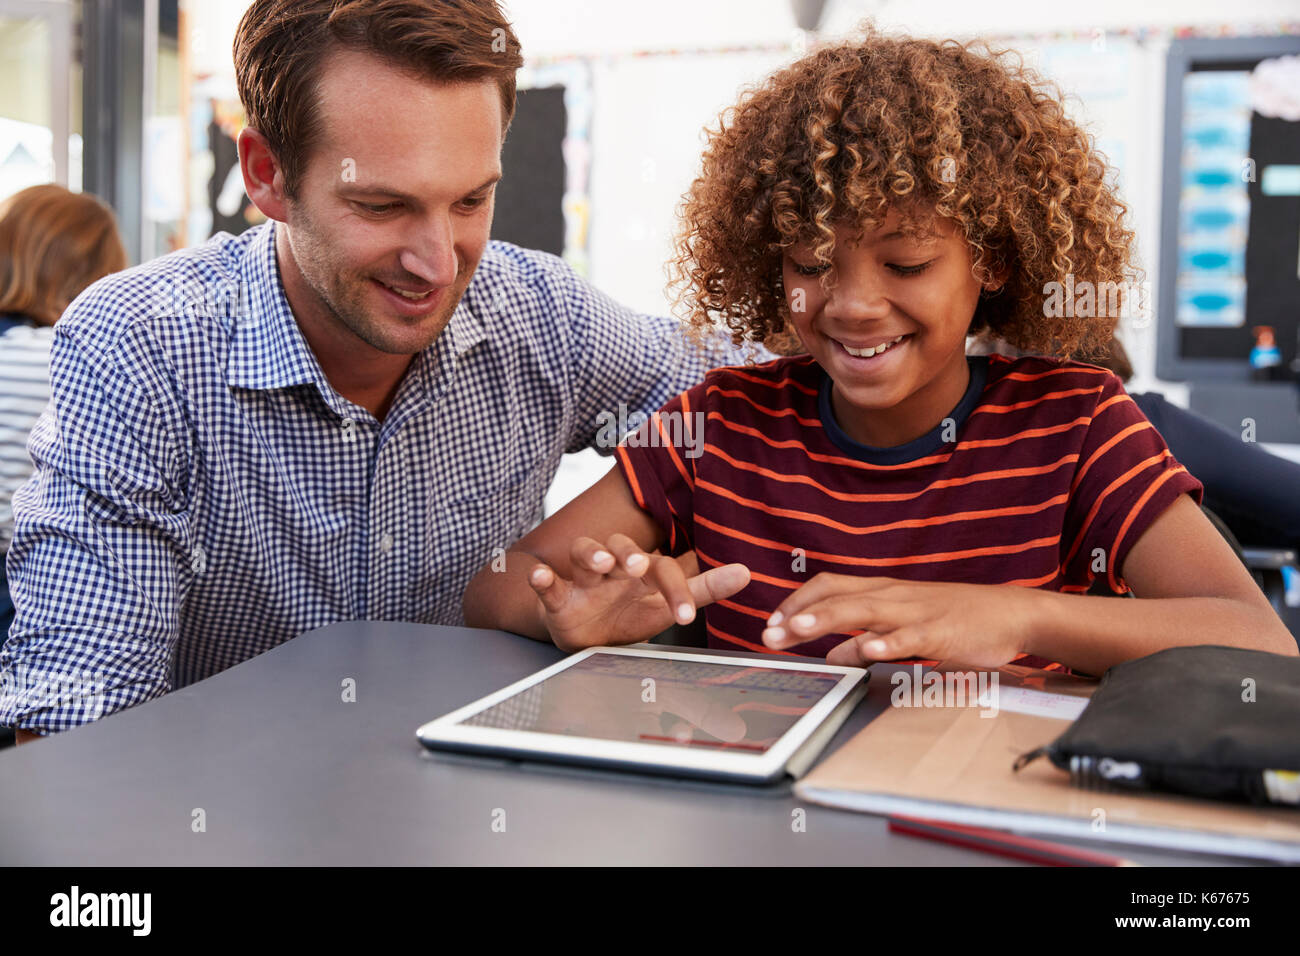 Teacher and schoolboy using tablet computer in class - Stock Image